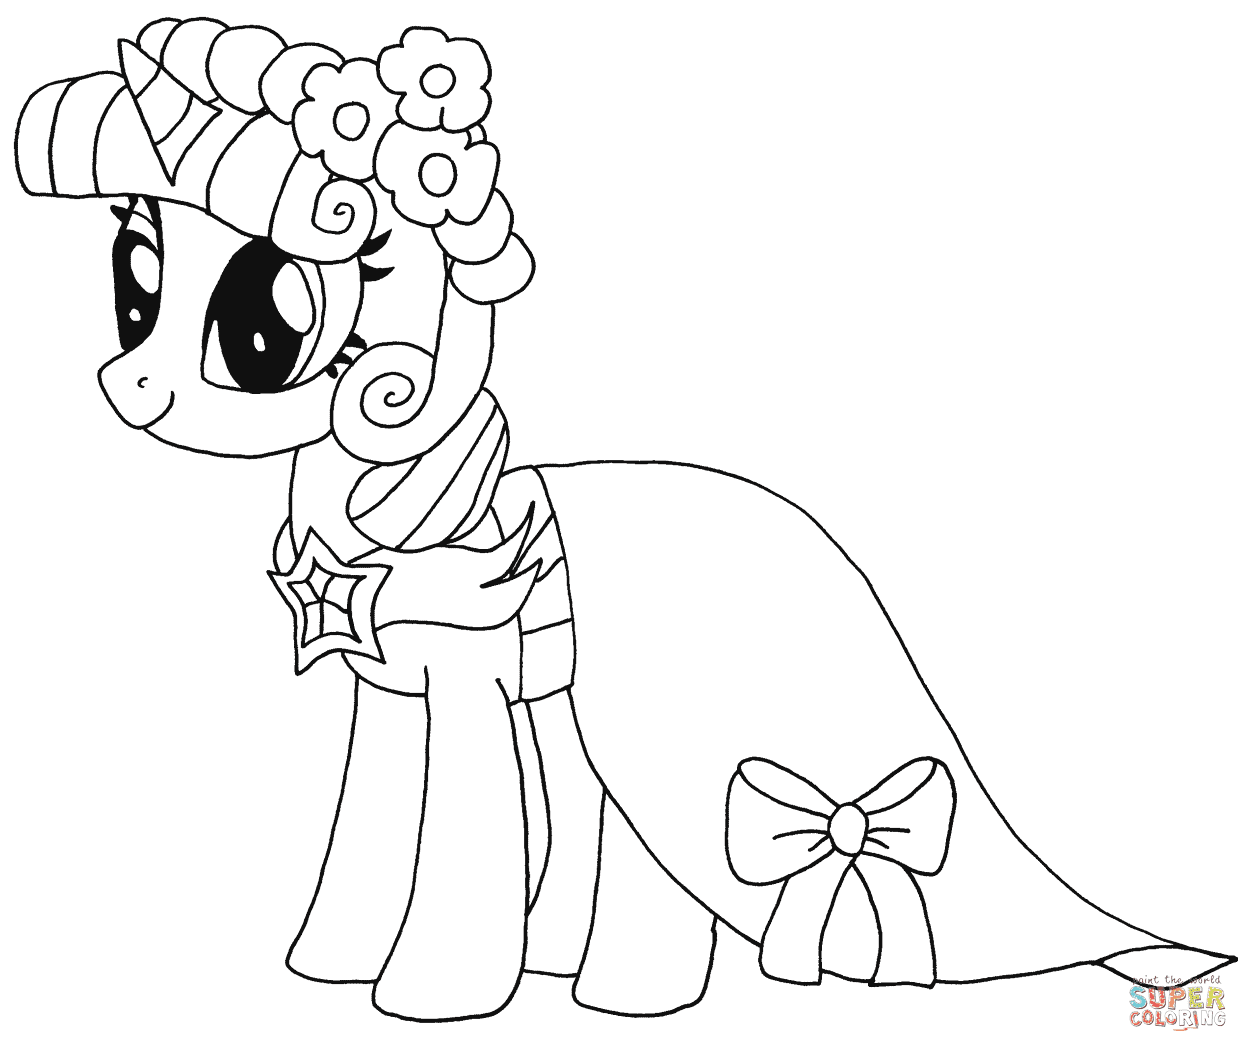 Princesse Twilight Sparkle coloriages pour visualiser la version imprimable ou colorier en ligne patible avec les tablettes iPad et Android